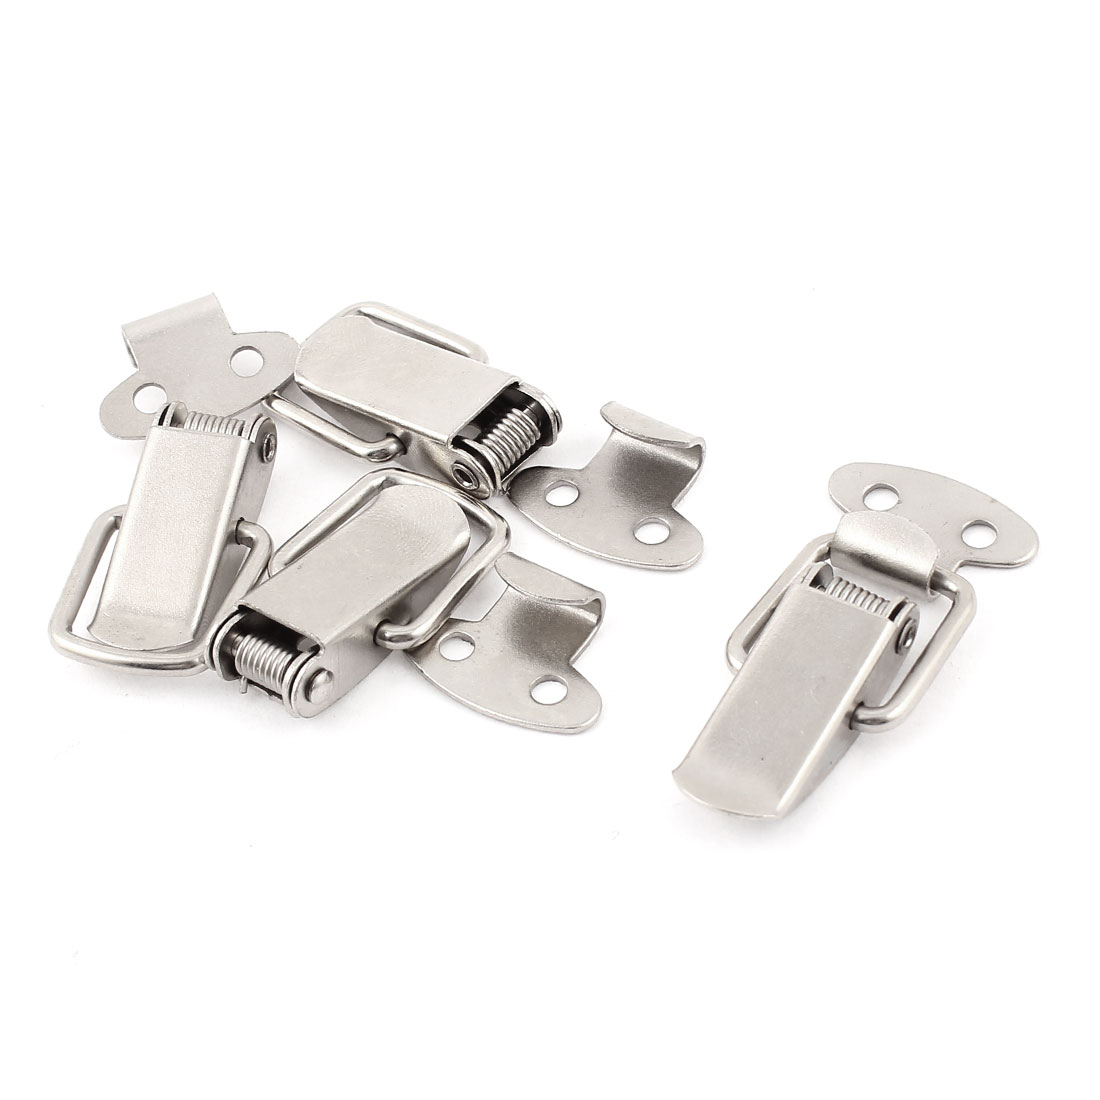 UXCELL Suitcase Chest Tool Boxes Metal Spring Loaded Toggle Latch Hasp Lock Locking 4Pcs ...